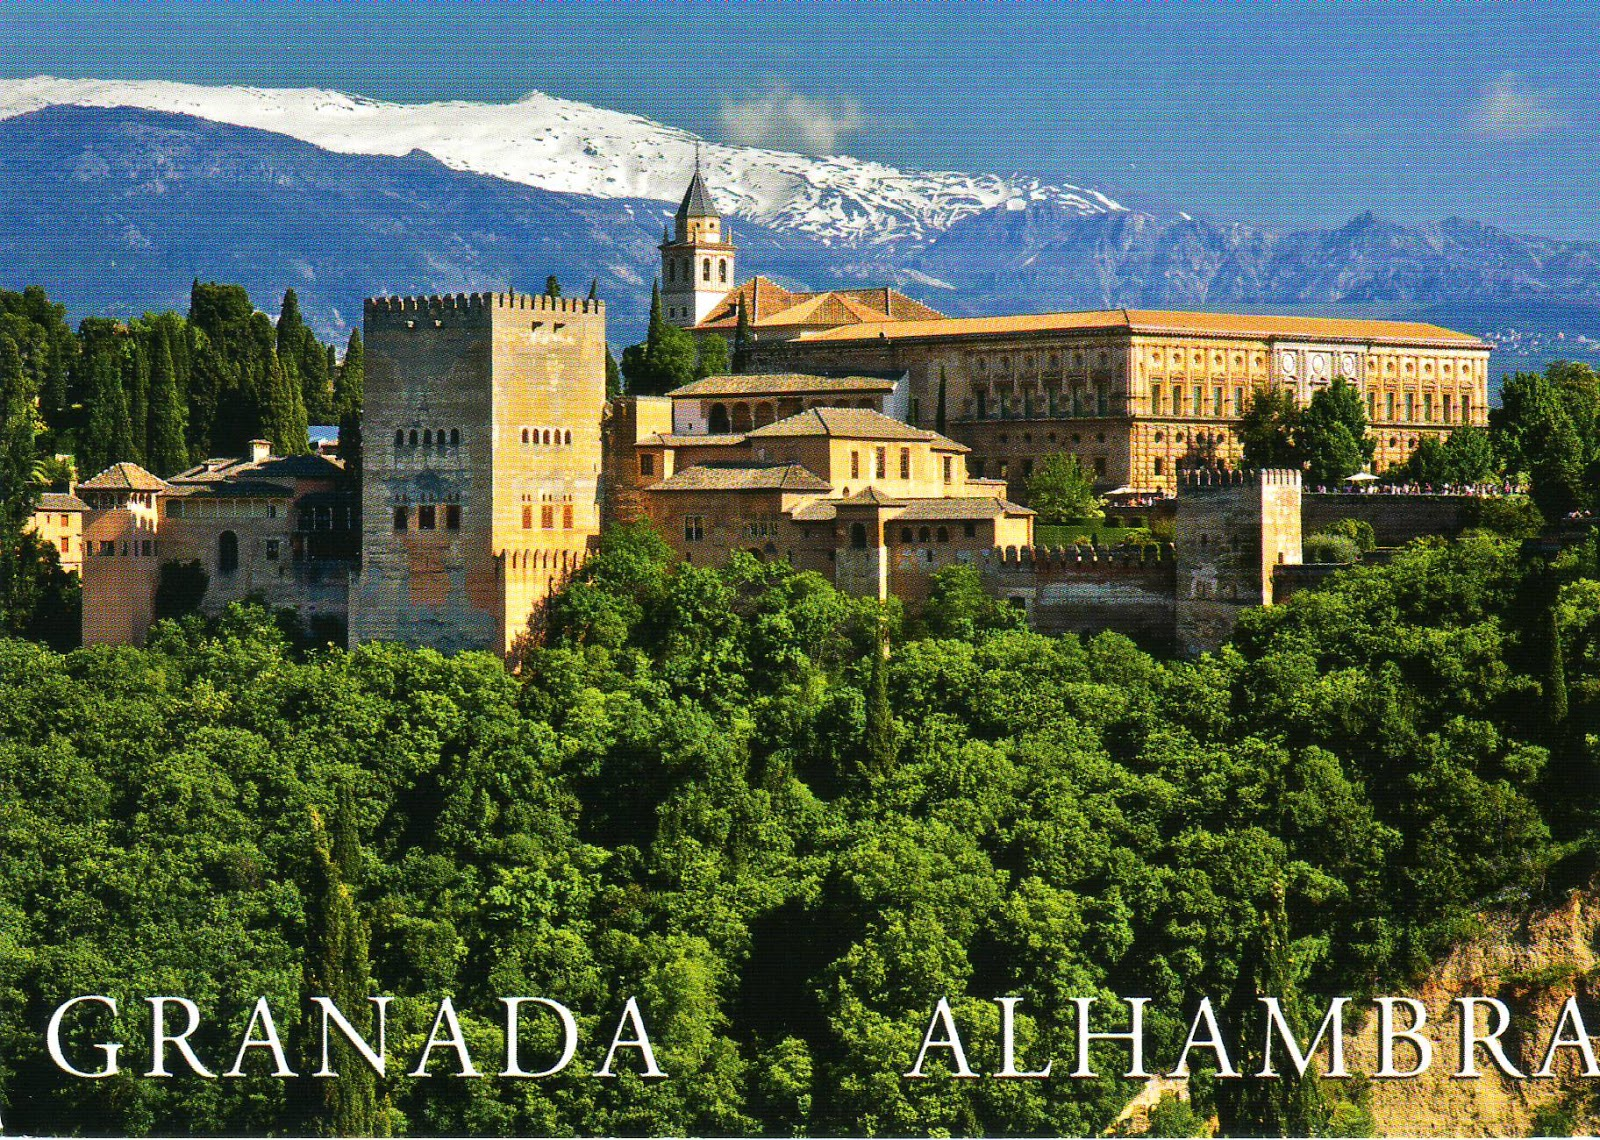 Tickets to The Alhambra Granada Spain images